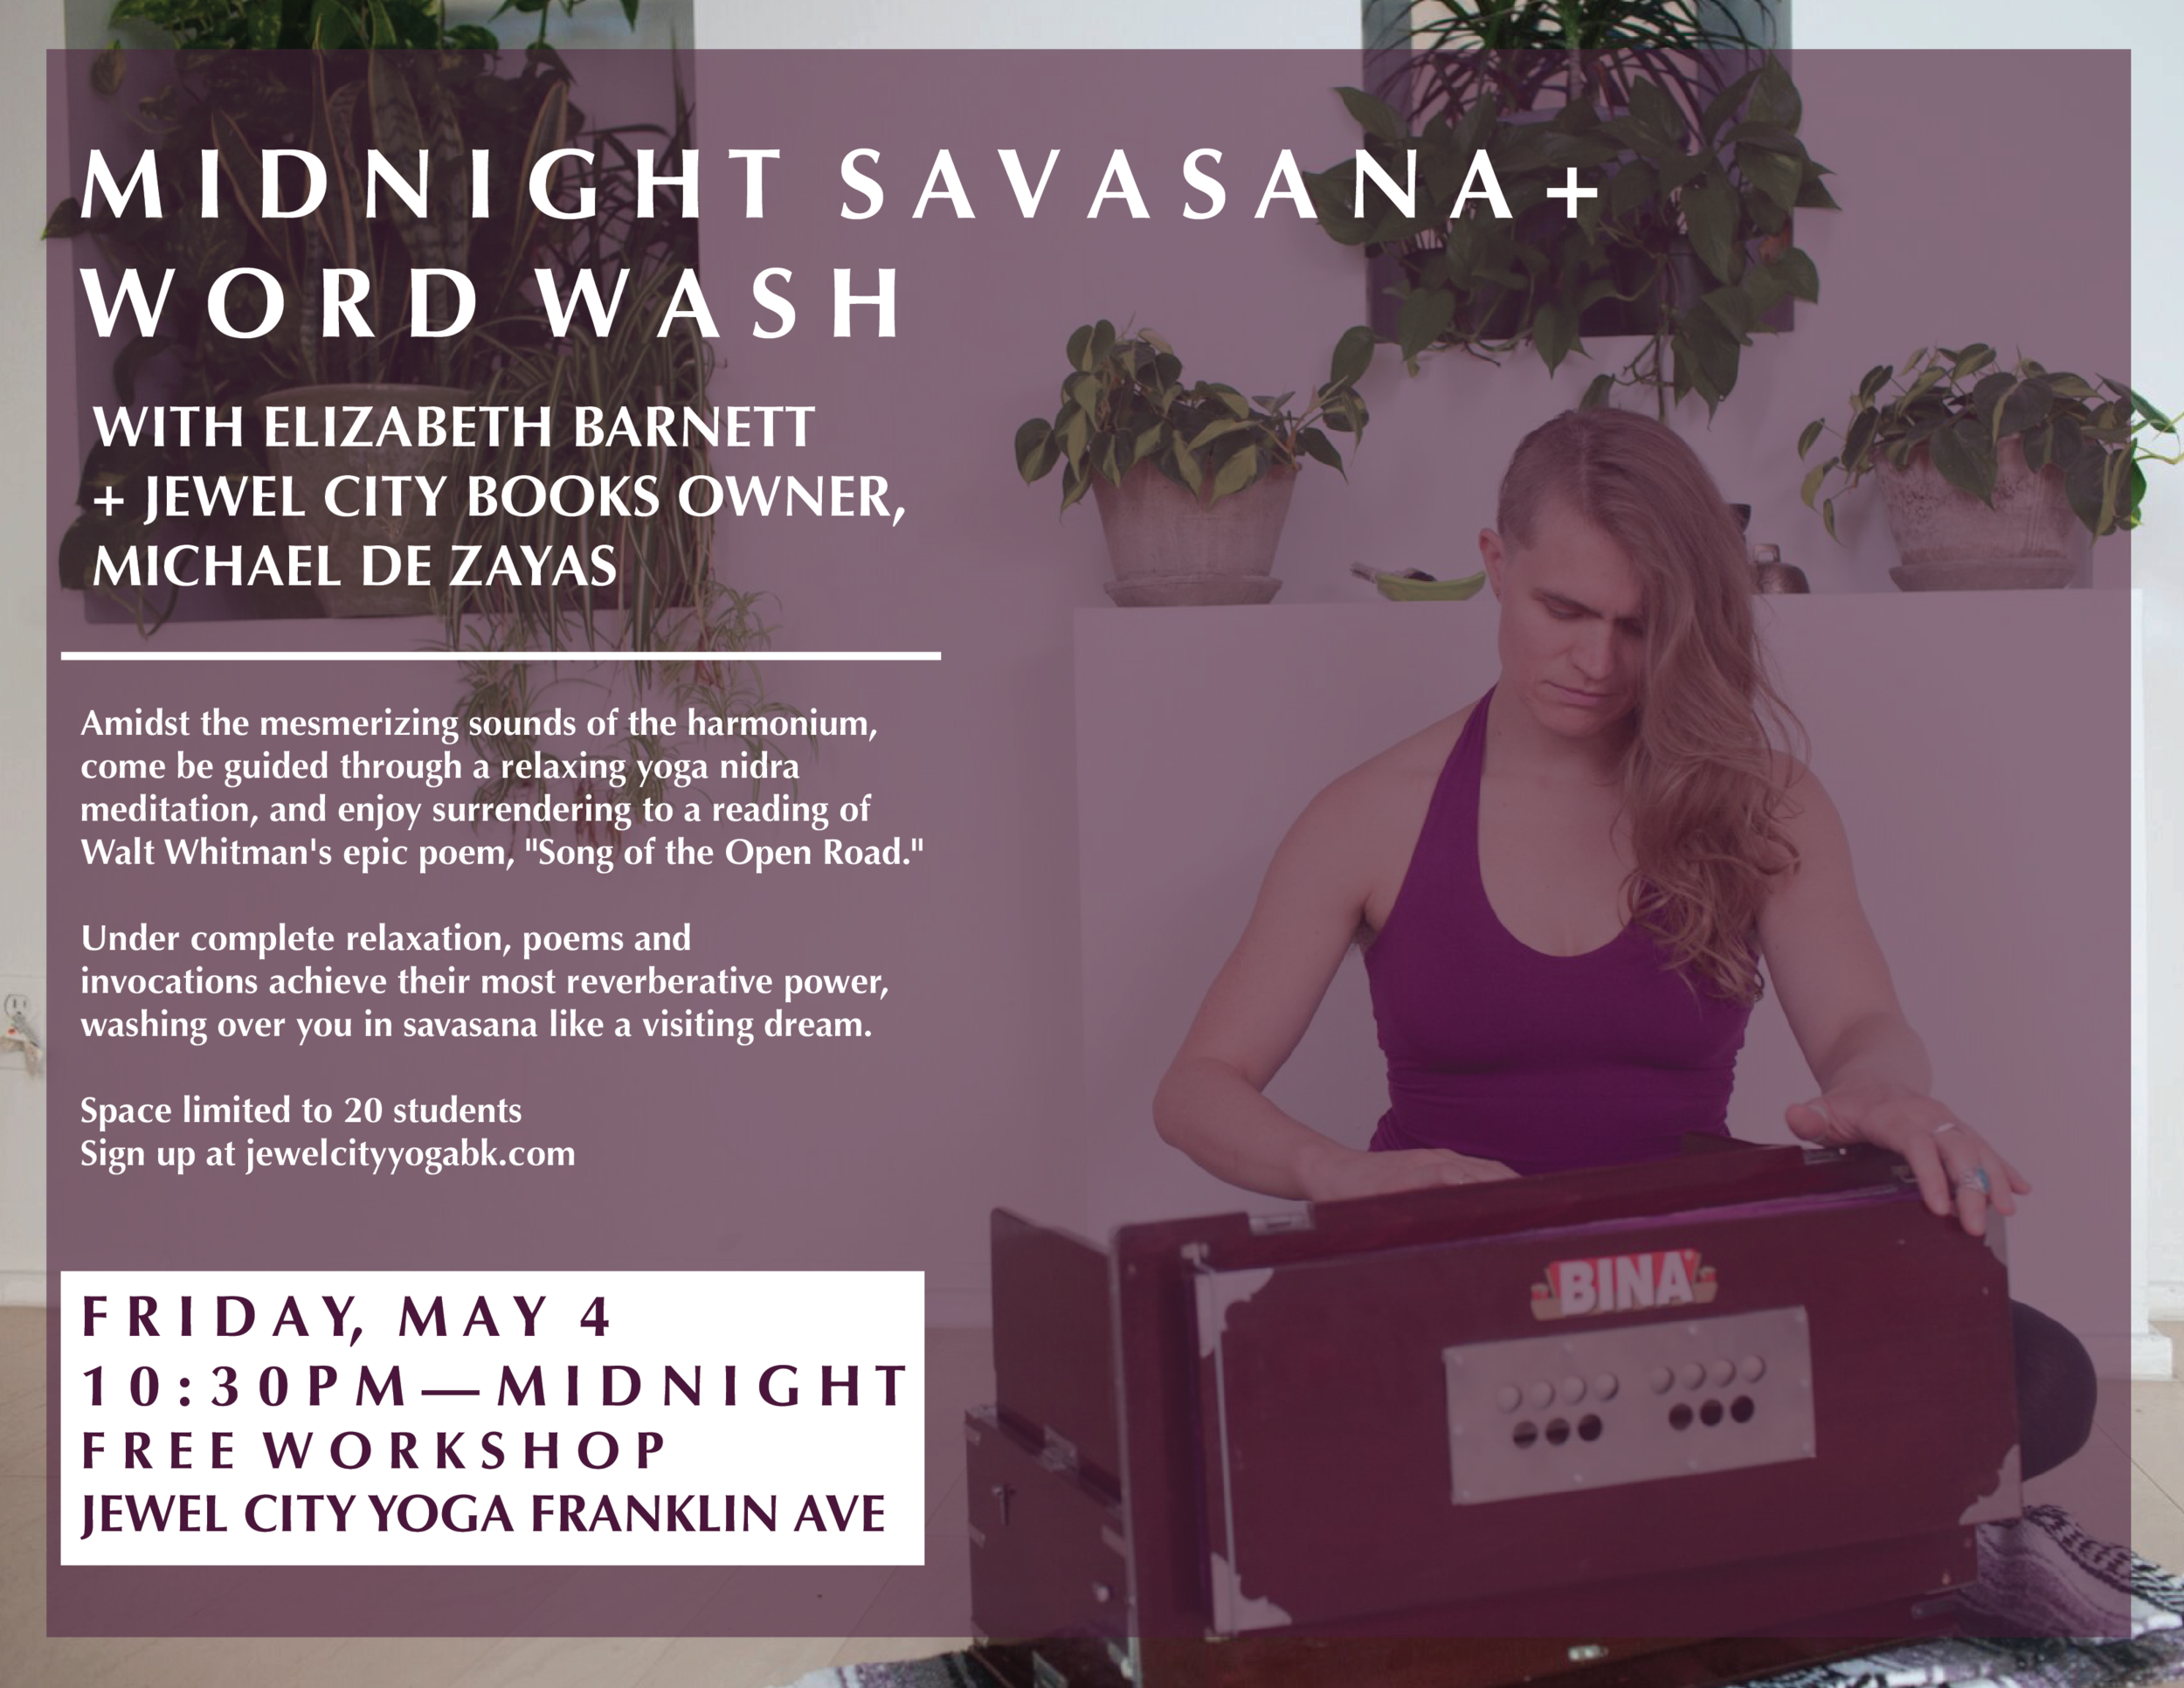 JCY_Midnight Savasana Wkshp Flyer-01.png